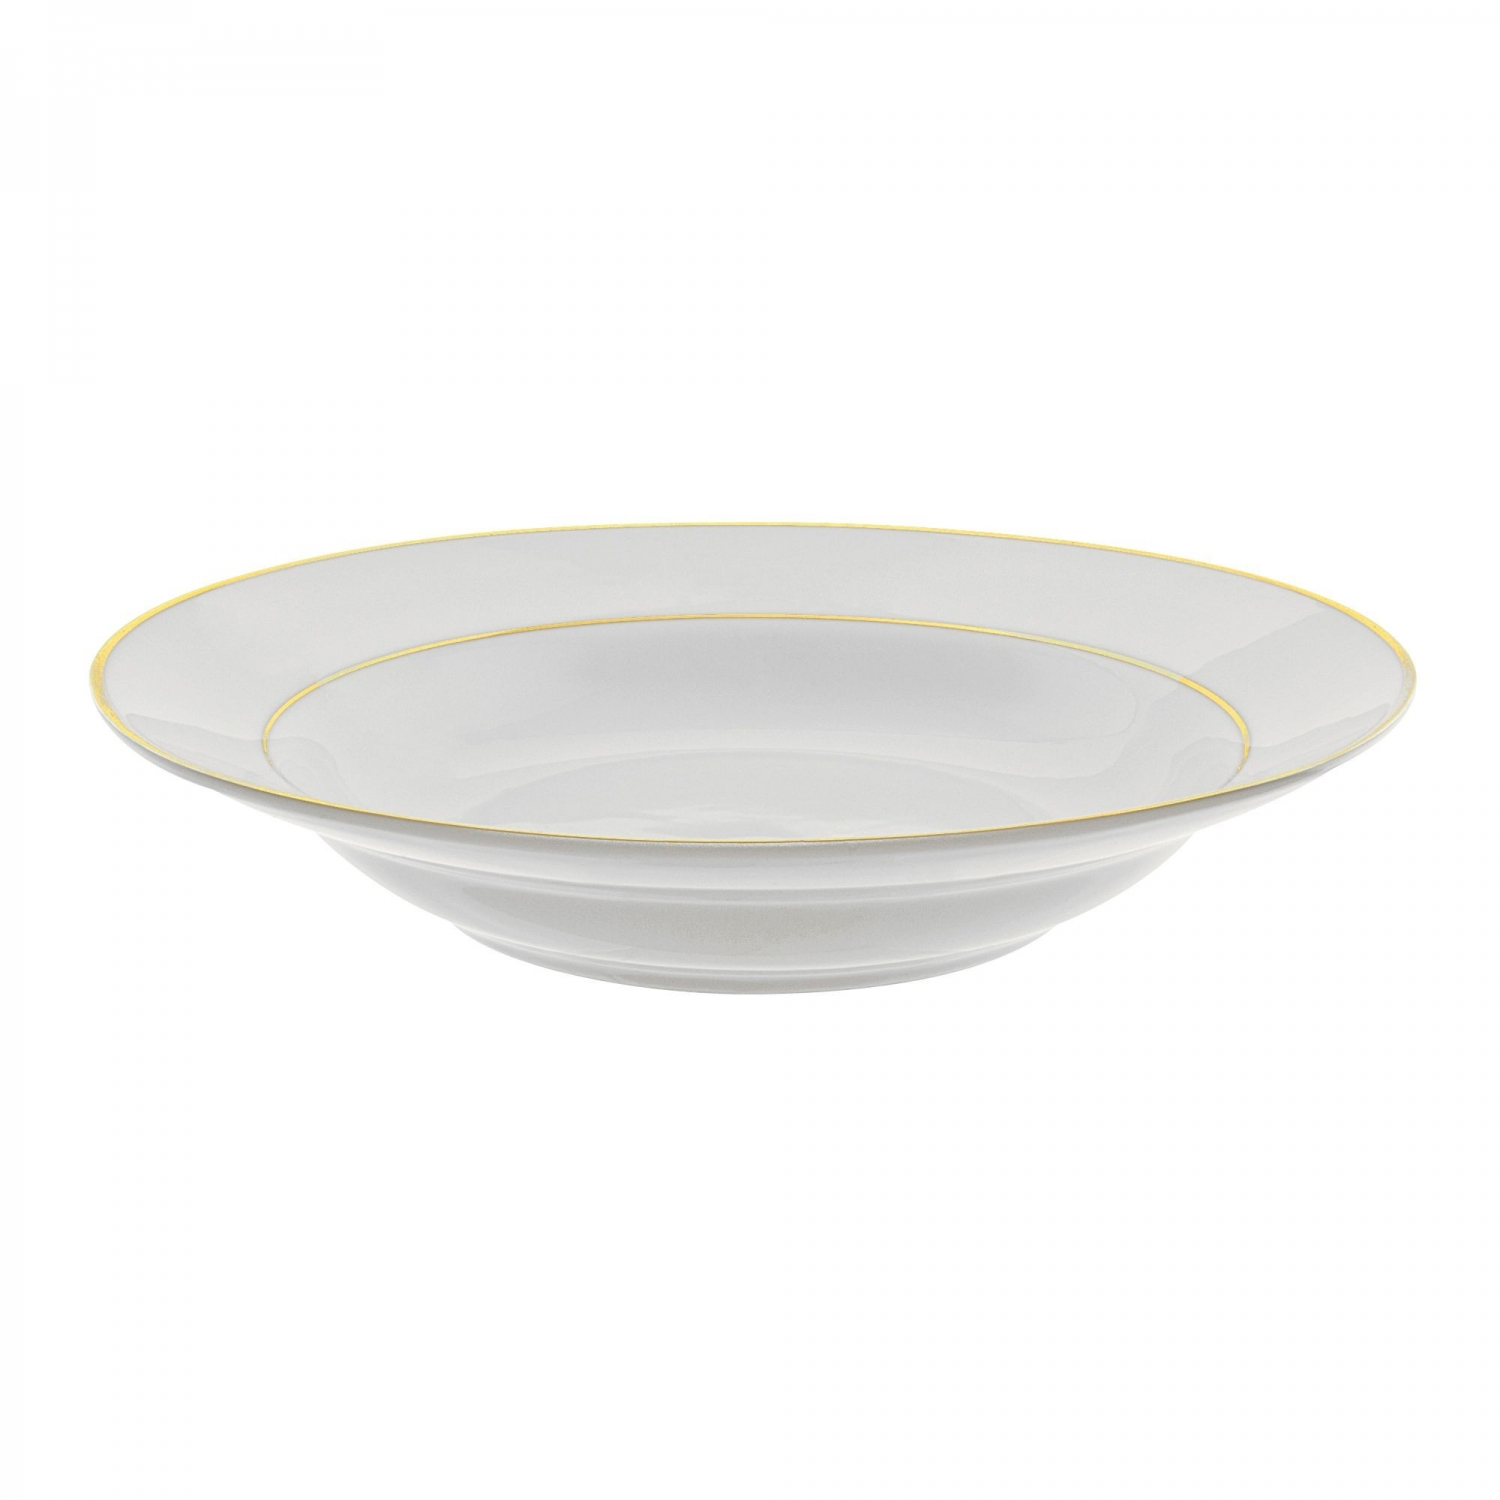 10 Strawberry Street GLD0003 10 oz. Double Gold Line Rim Soup Bowl